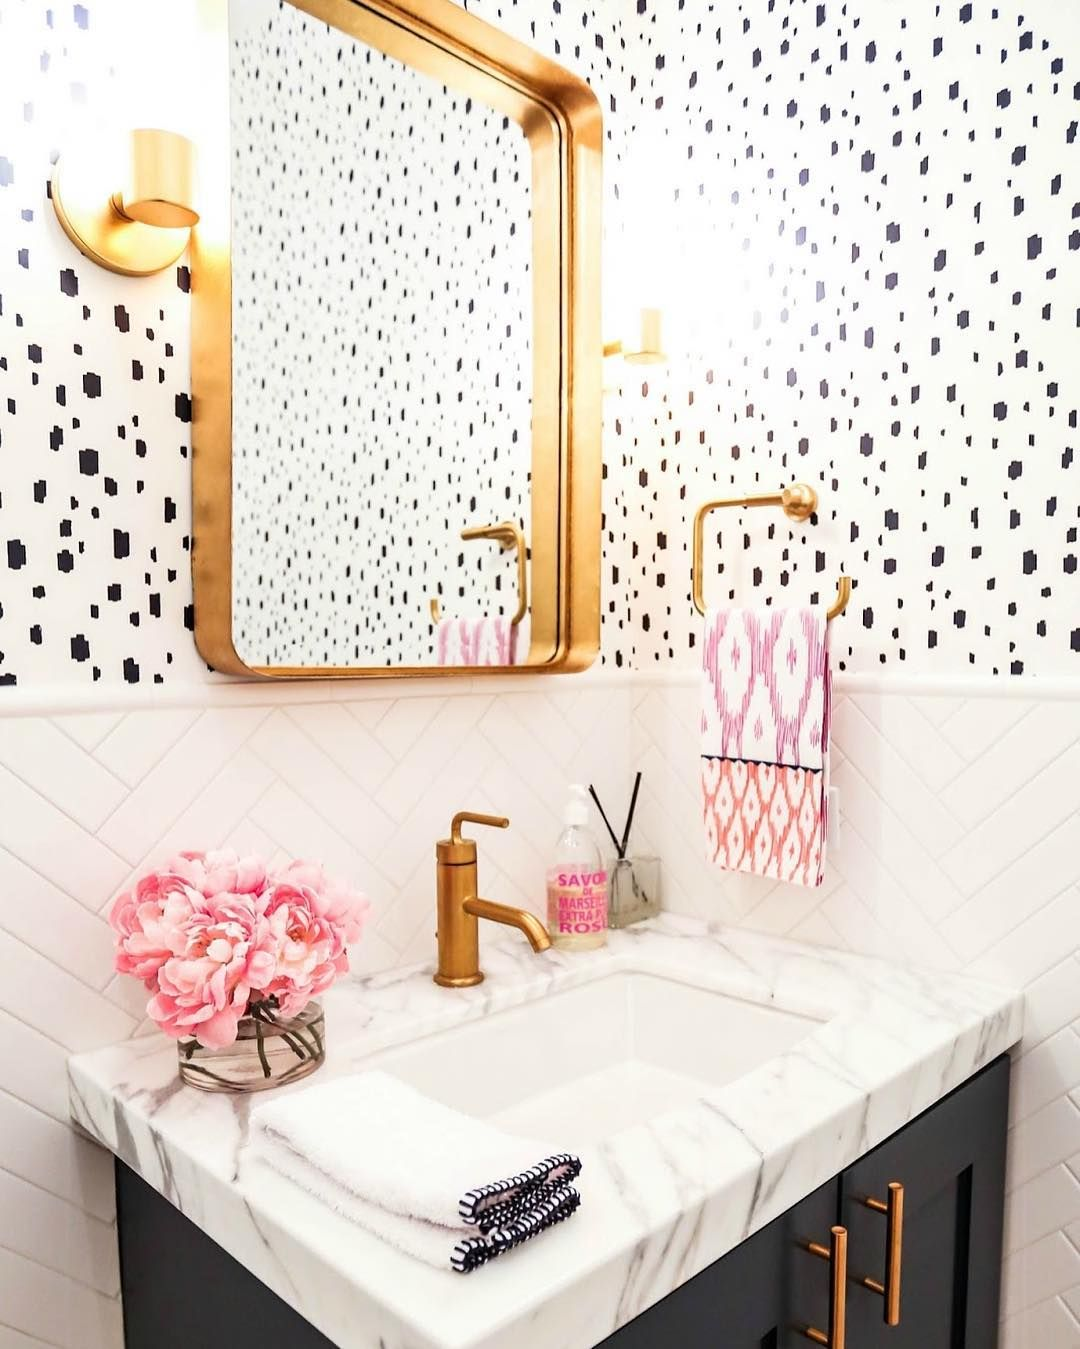 This High Contrast Bathroom Featuring Our Navy Spotted Wallpaper Is Just Too Good Not To Share And That Herring Girls Bathroom Bathroom Inspiration Home Decor